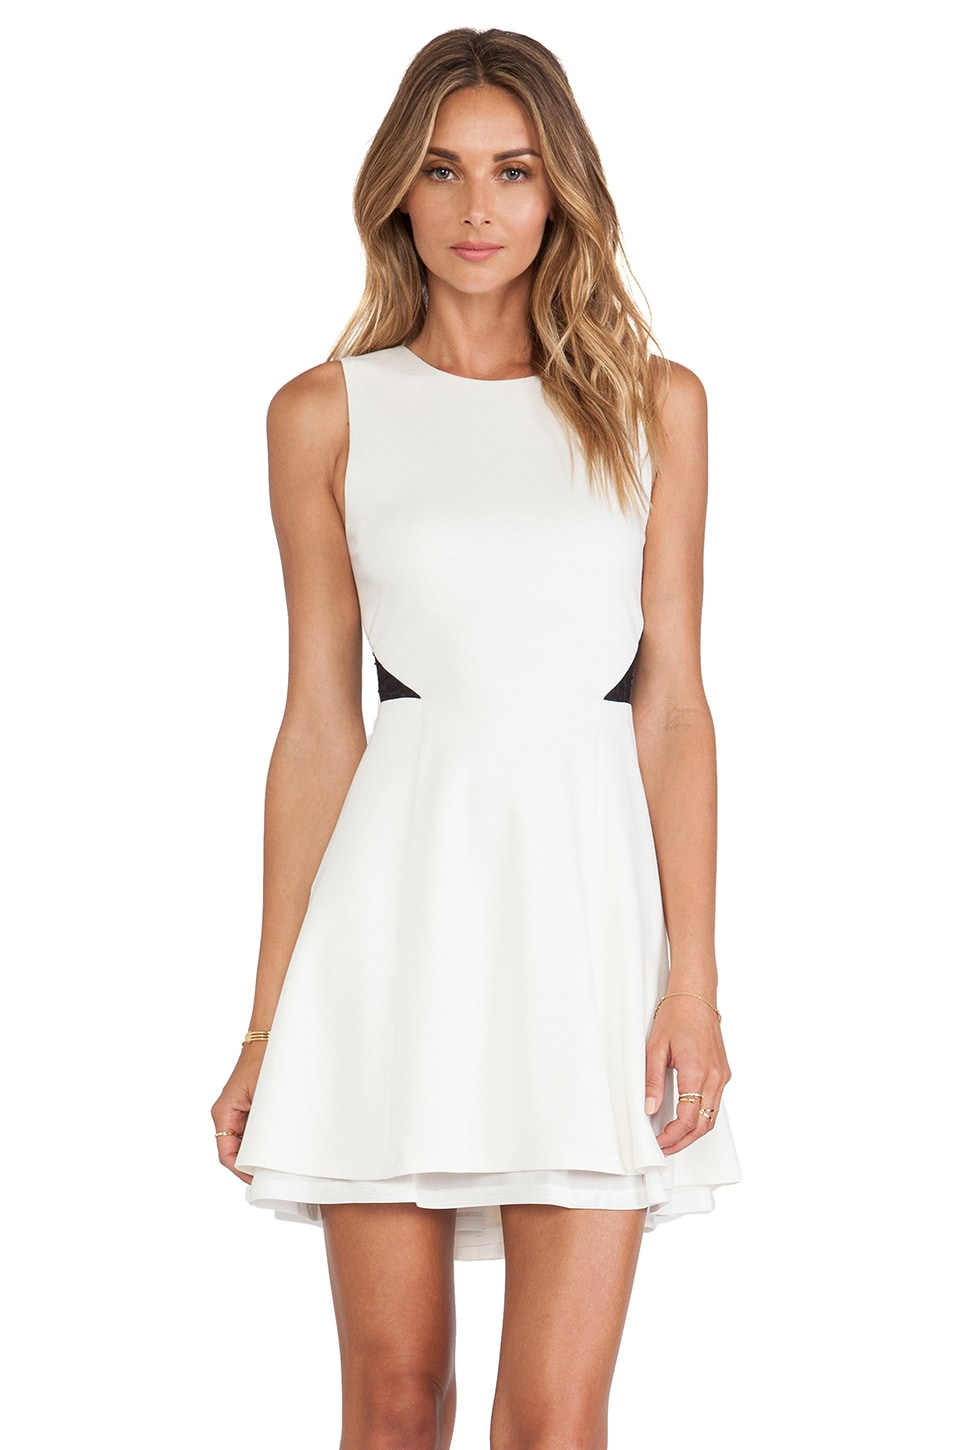 Alice + Olivia Evan Fit & Flare Dress in Cream